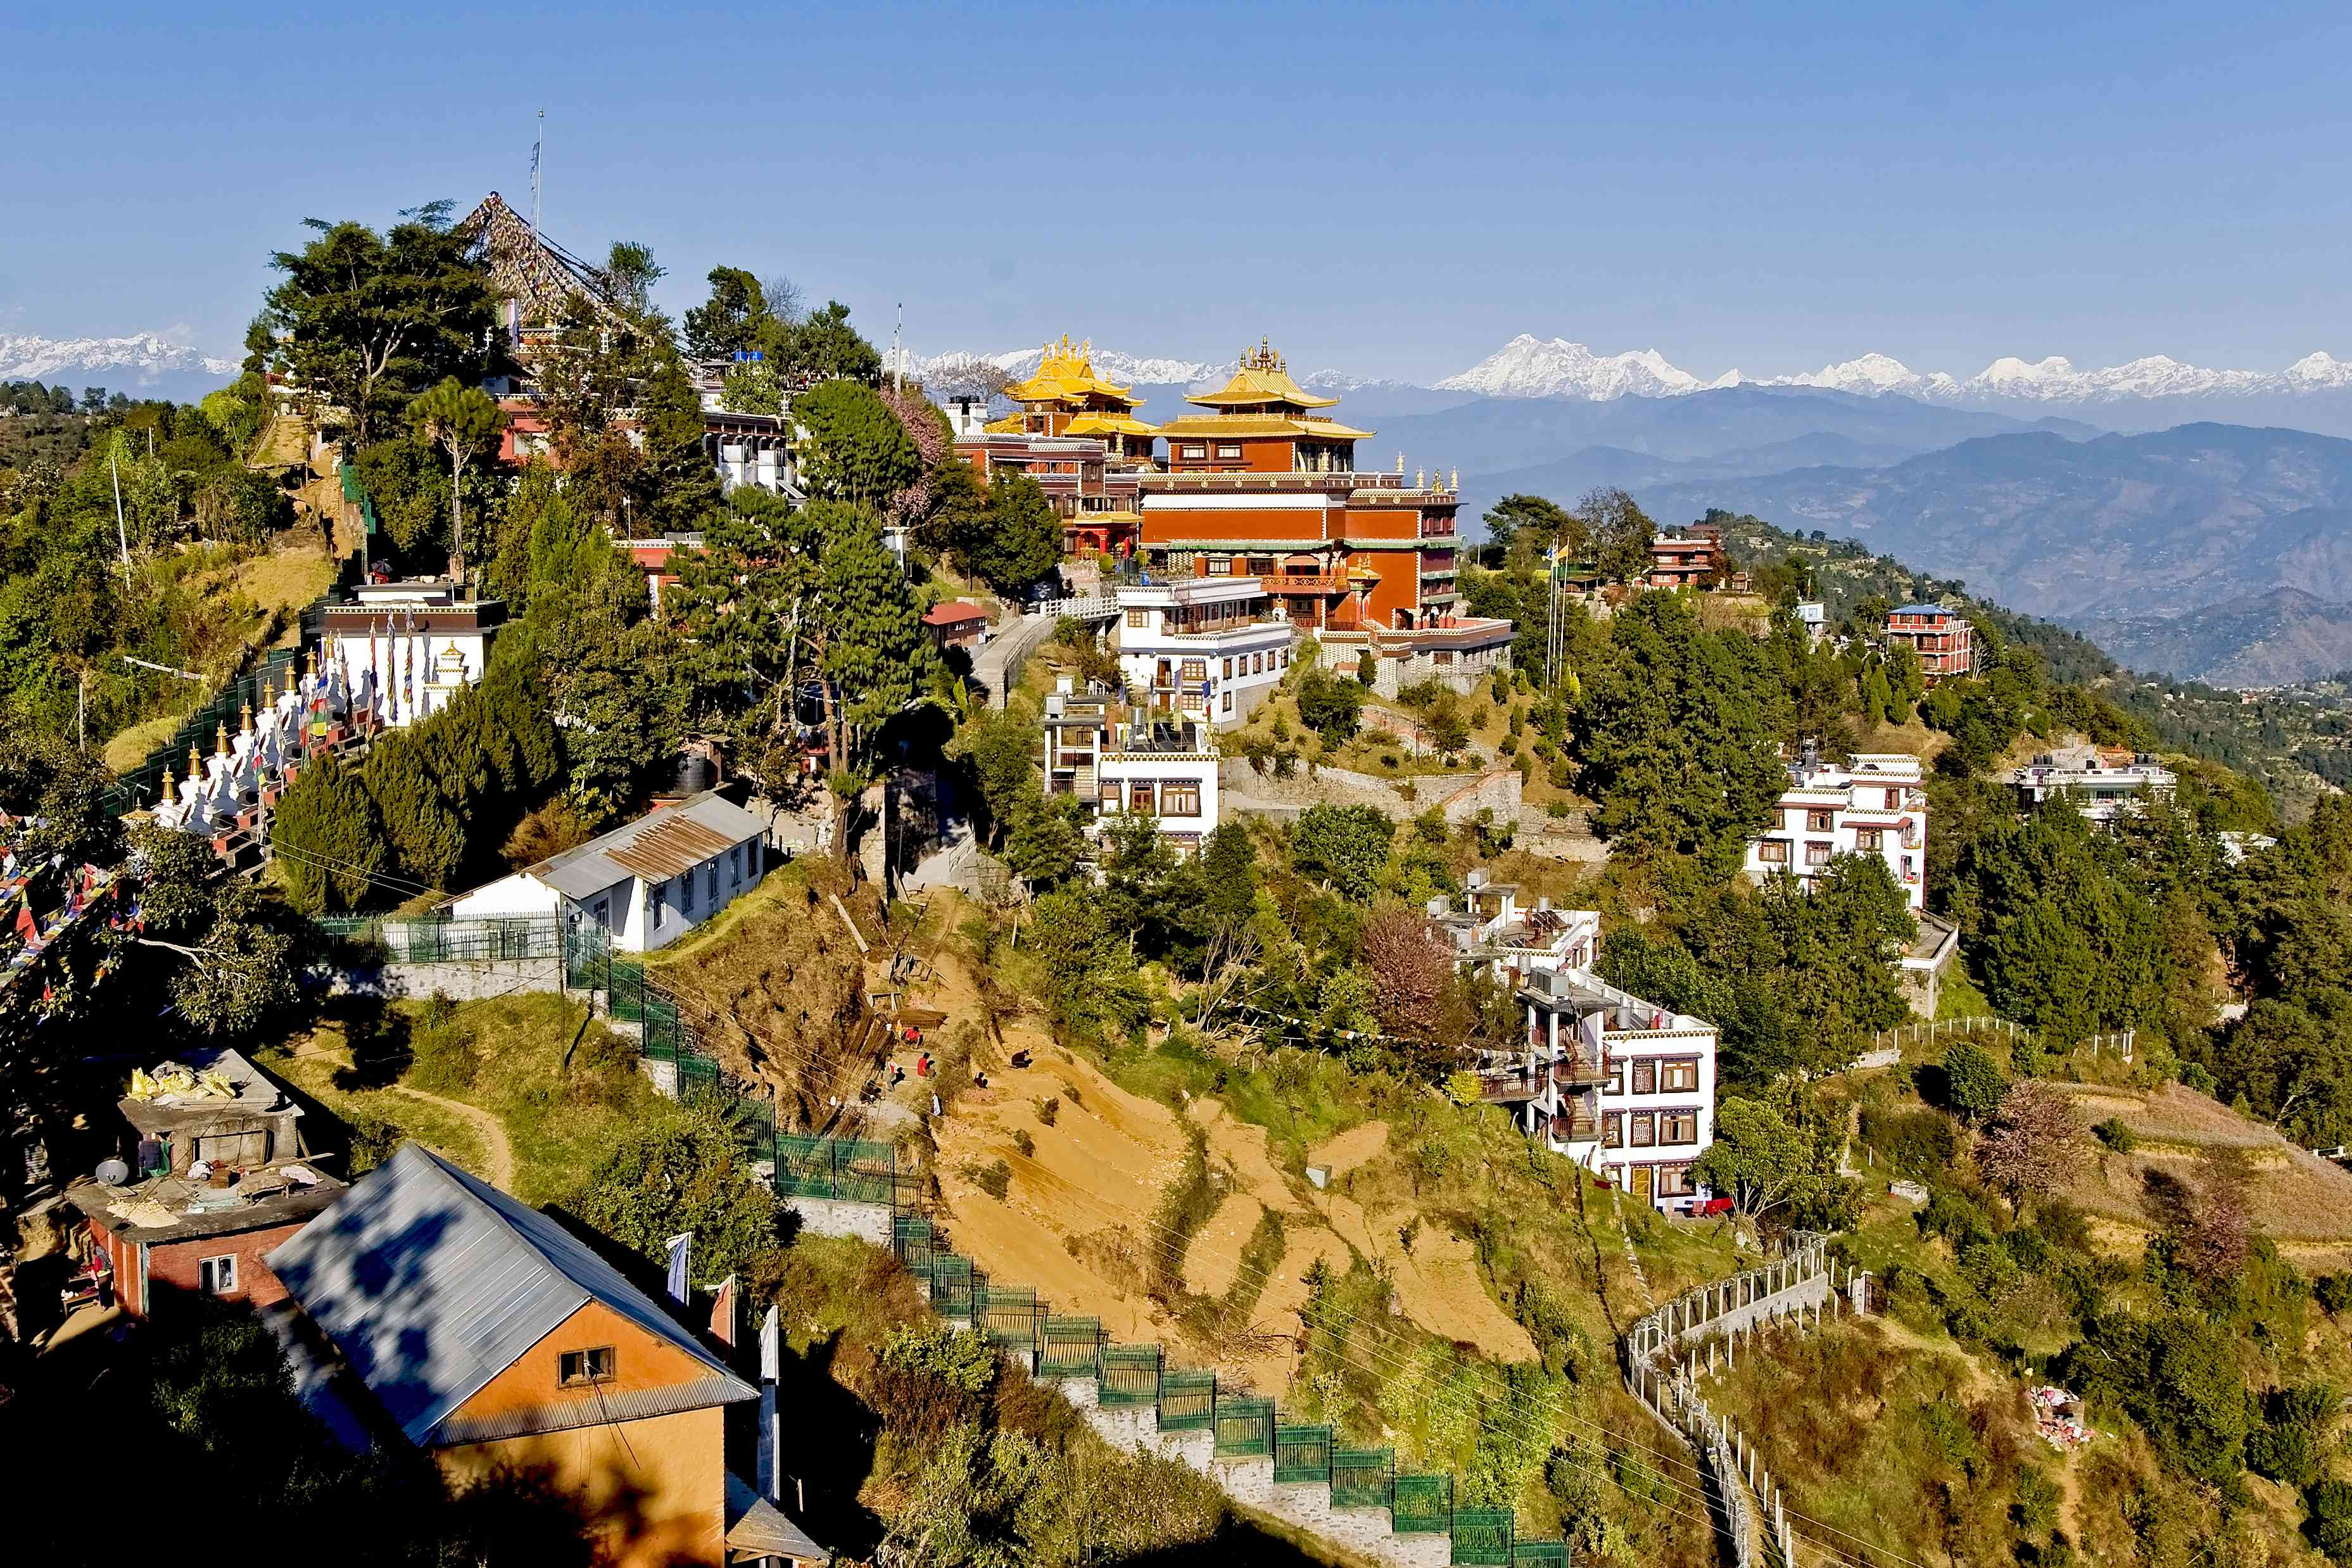 Buddhist monastery and houses on a hillside with snow peaks in distance